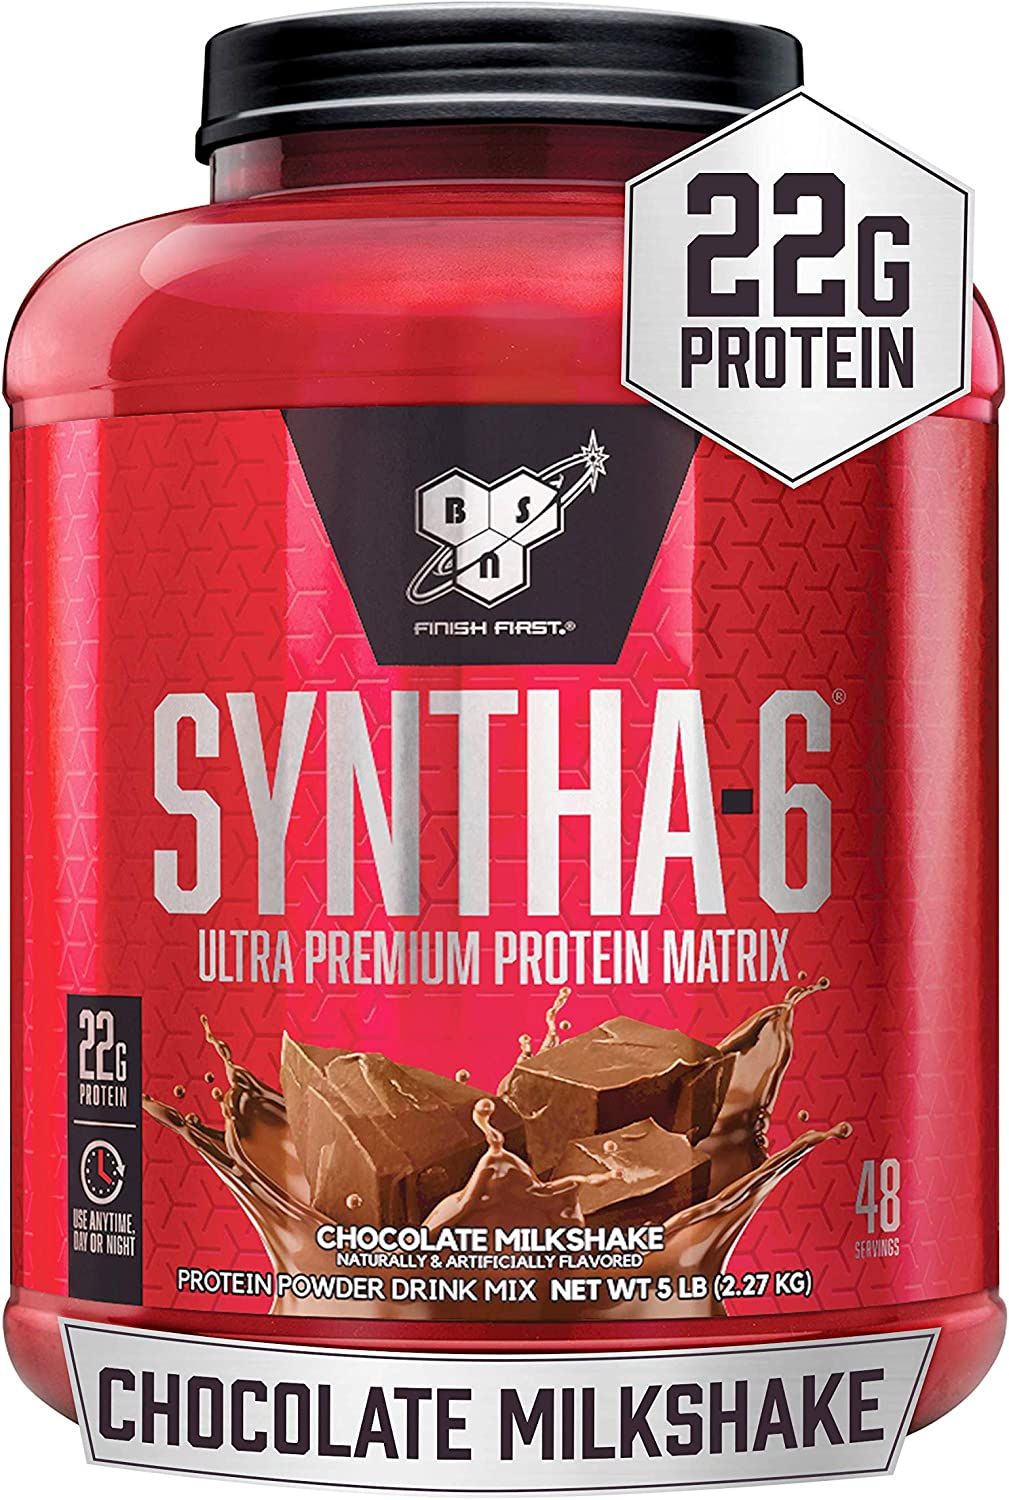 BSN SYNTHA-6 Whey Protein Powder, Micellar Casein, Milk Protein Isolate, Chocolate Milkshake, 48 Servings (Packaging May Vary): Health & Personal Care